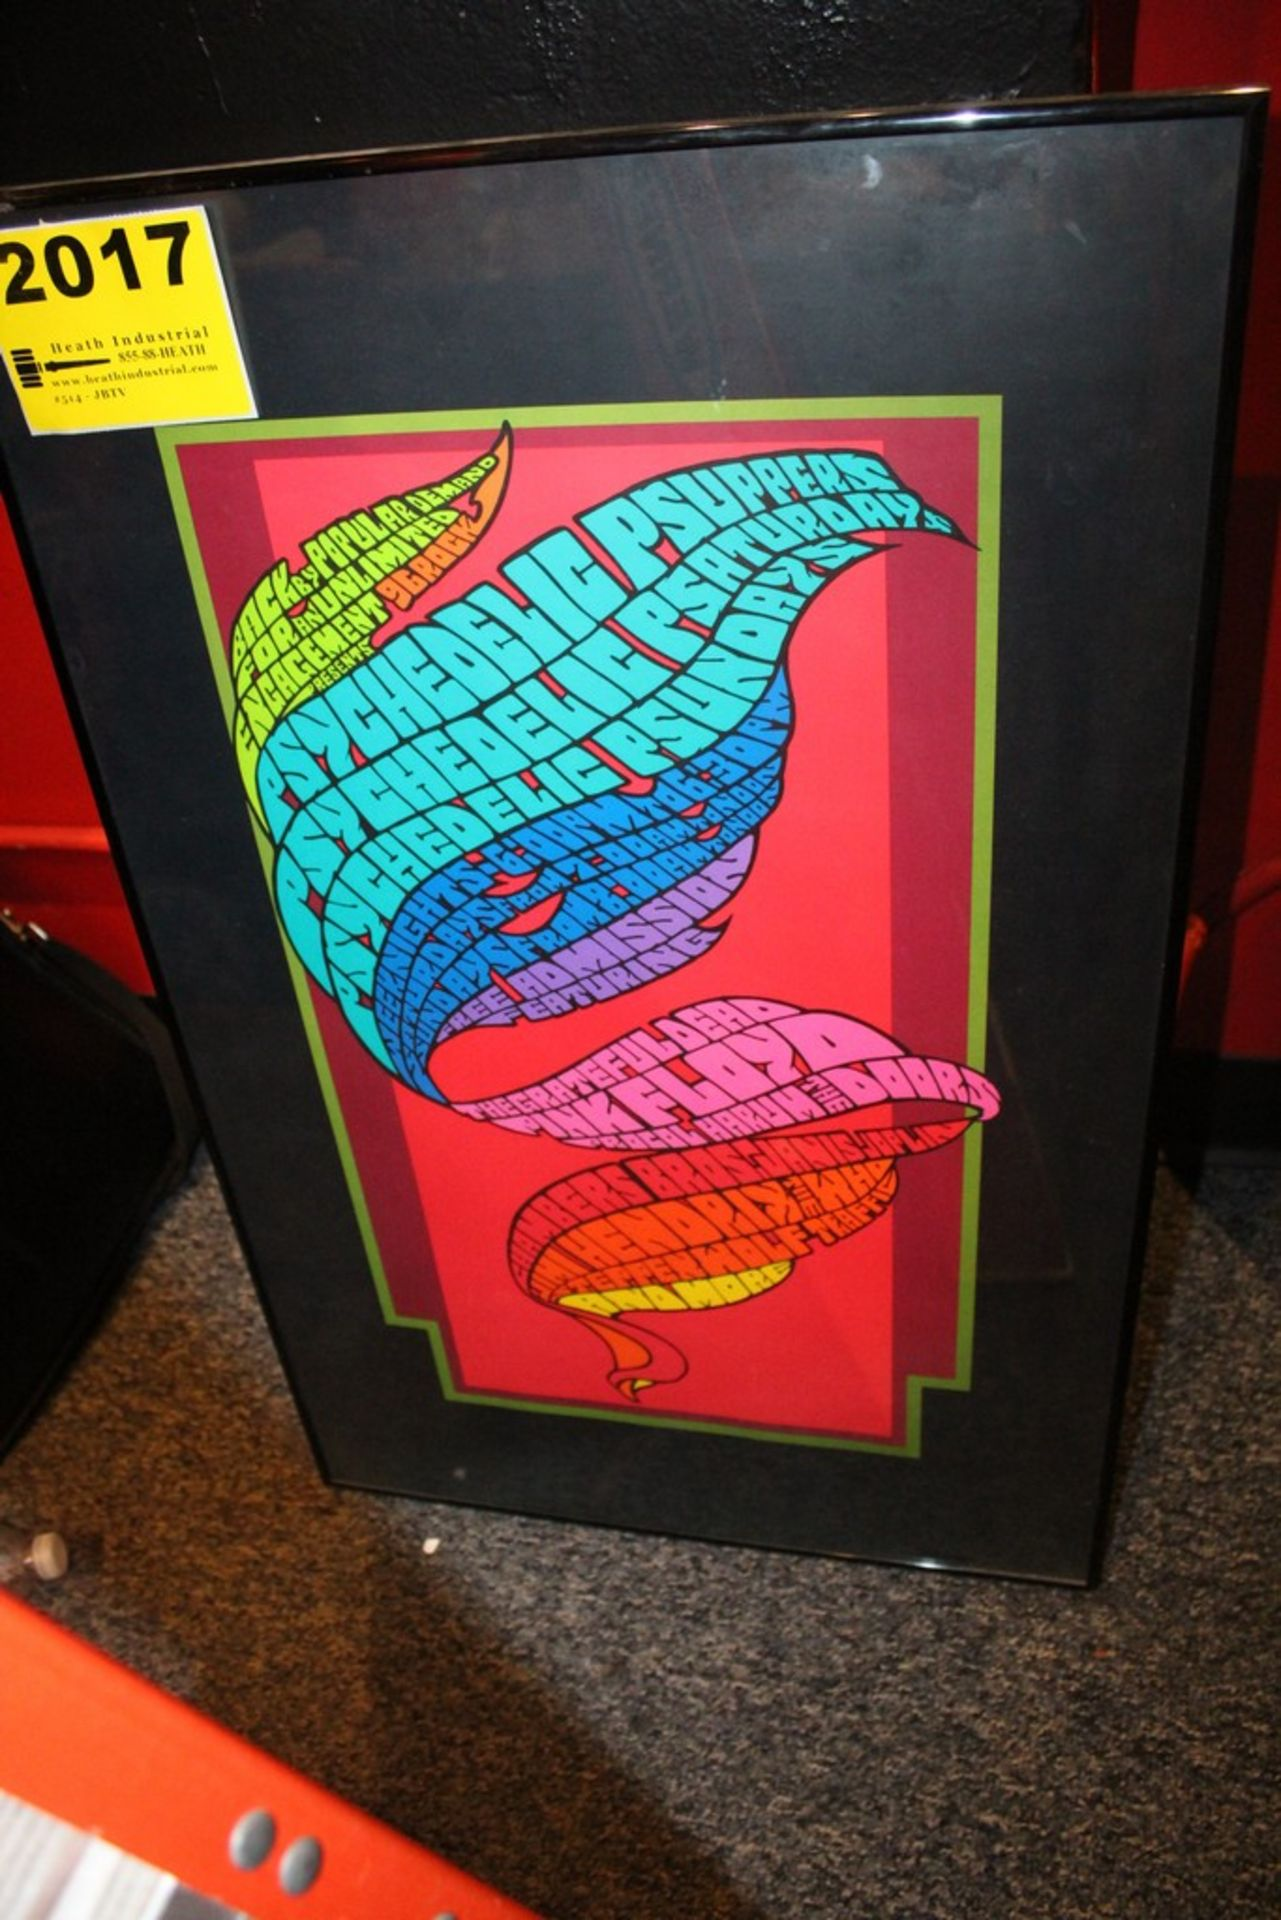 Lot 2017 - 96 Rock Psychedelic Psuppers Radio Show Poster